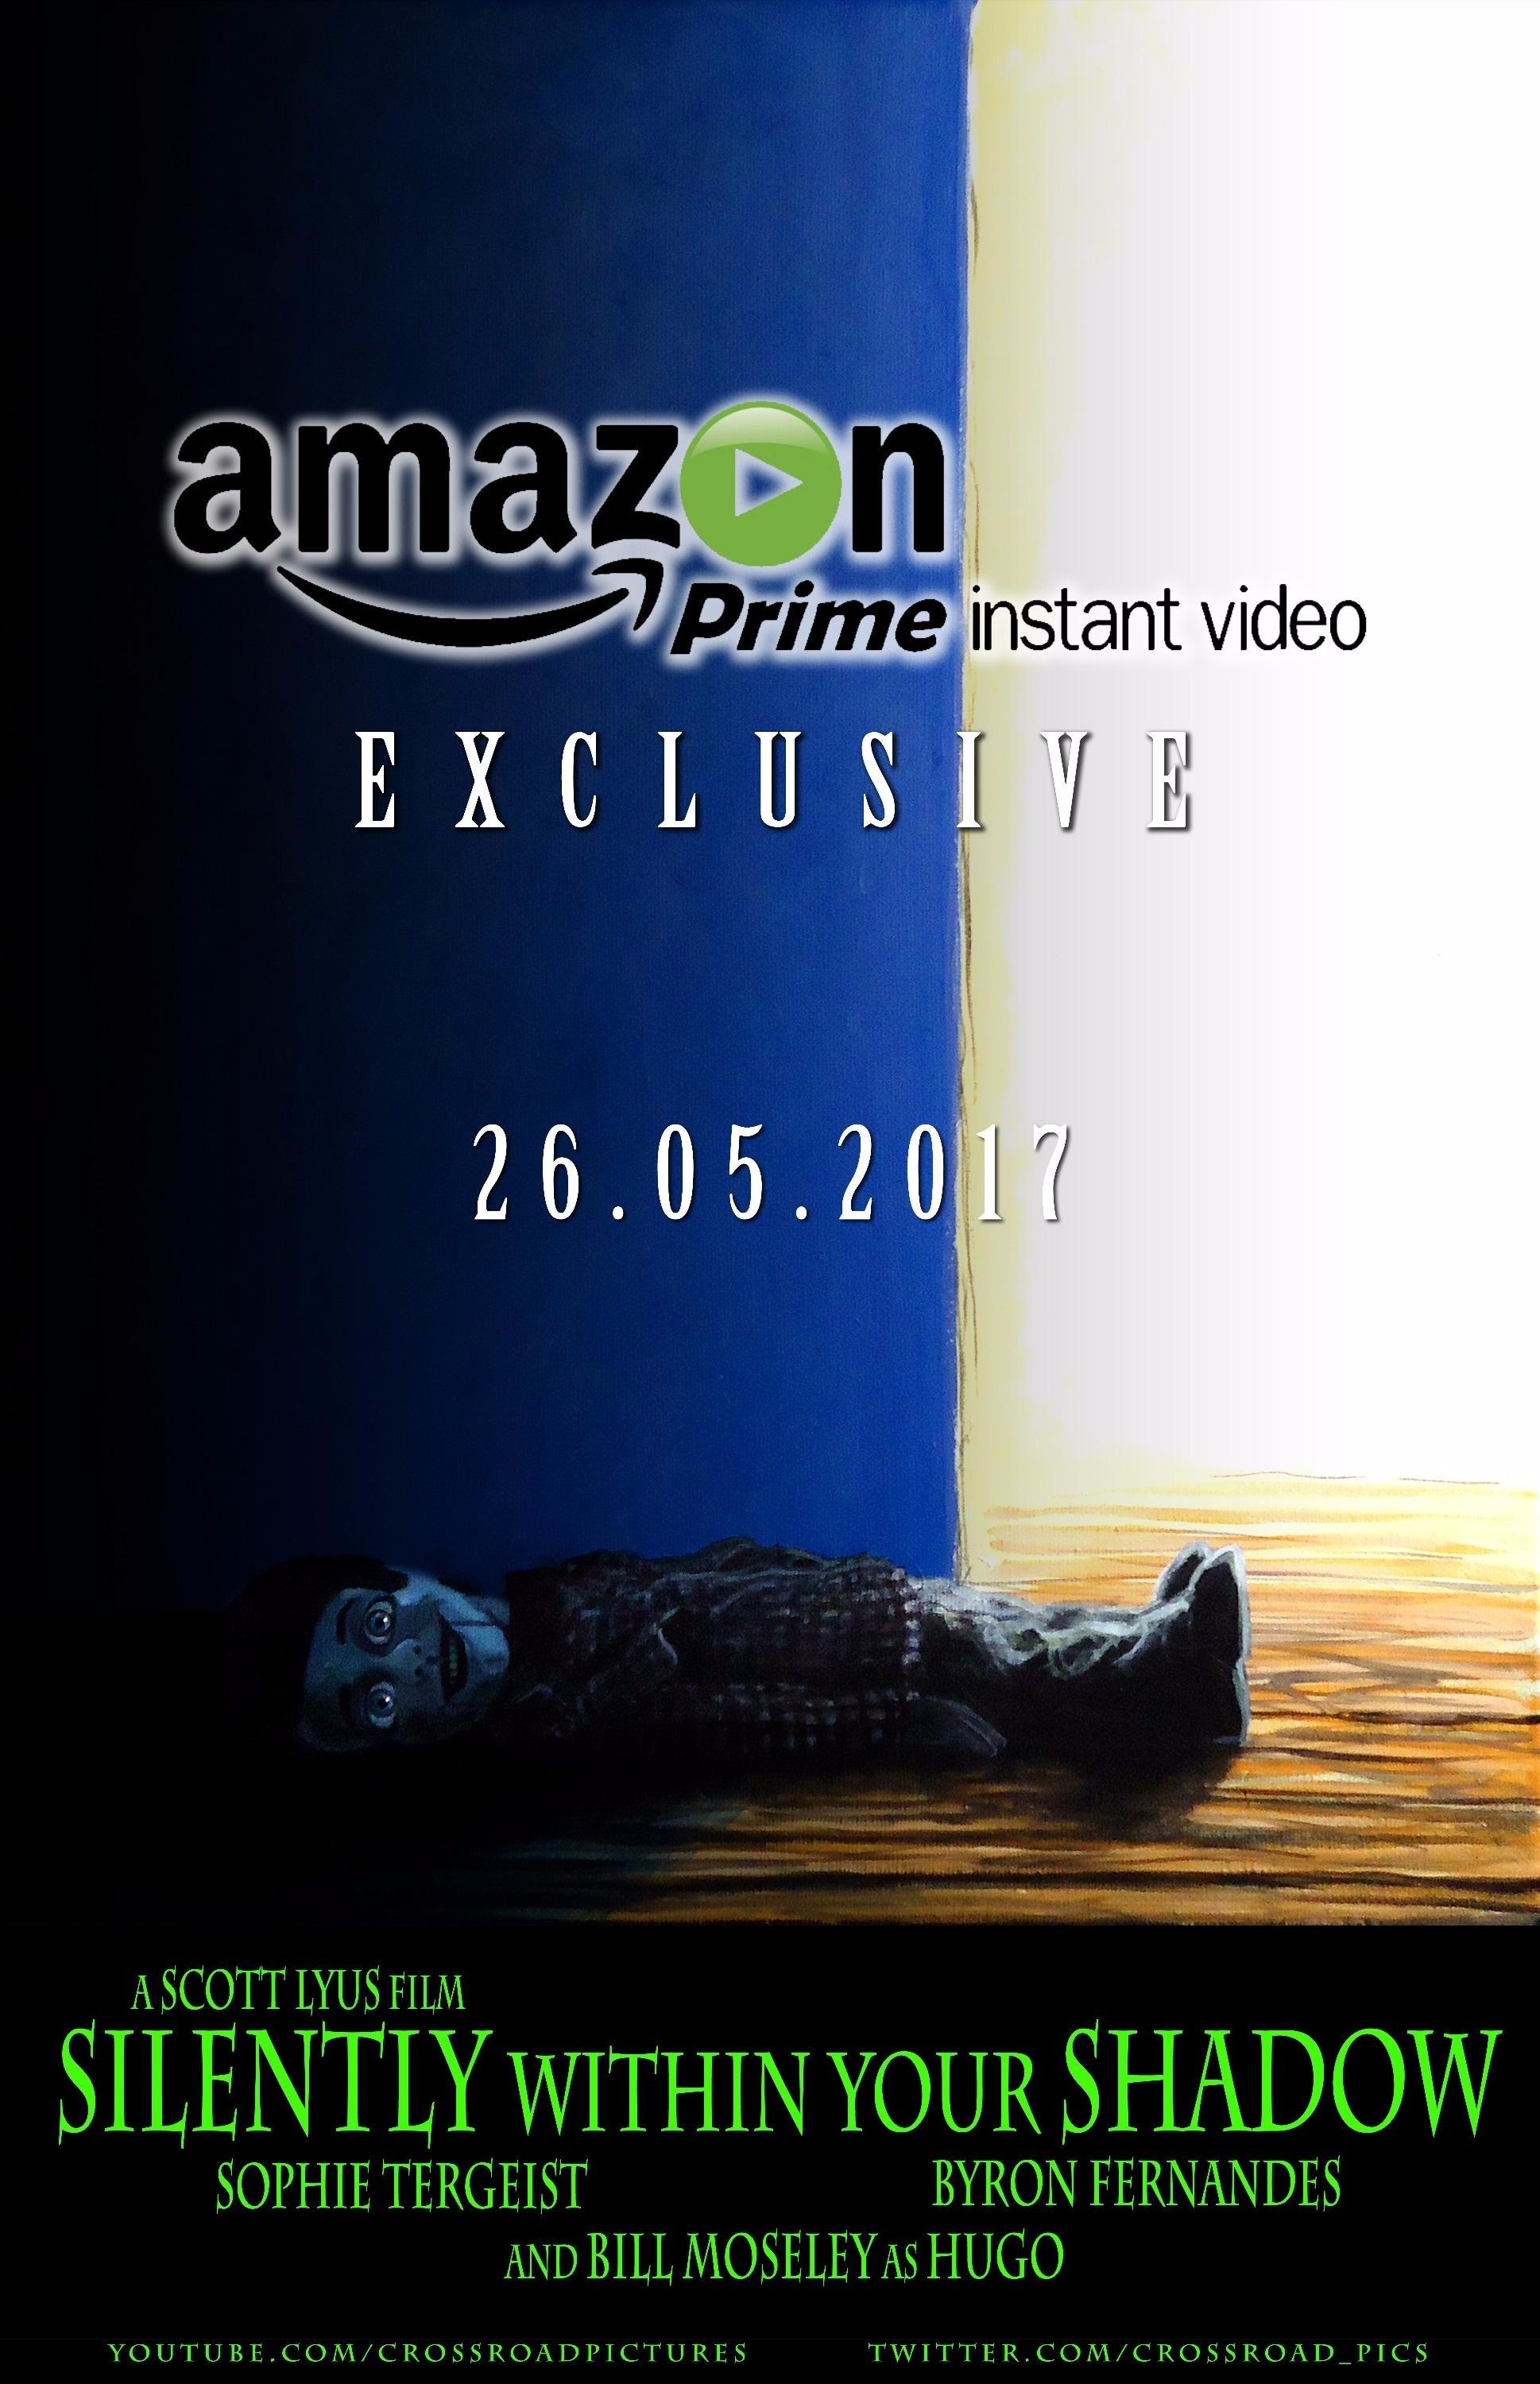 Amazon Poster 2 - Silently Within Your Shadow Pulling Strings on Amazon Prime Next Week